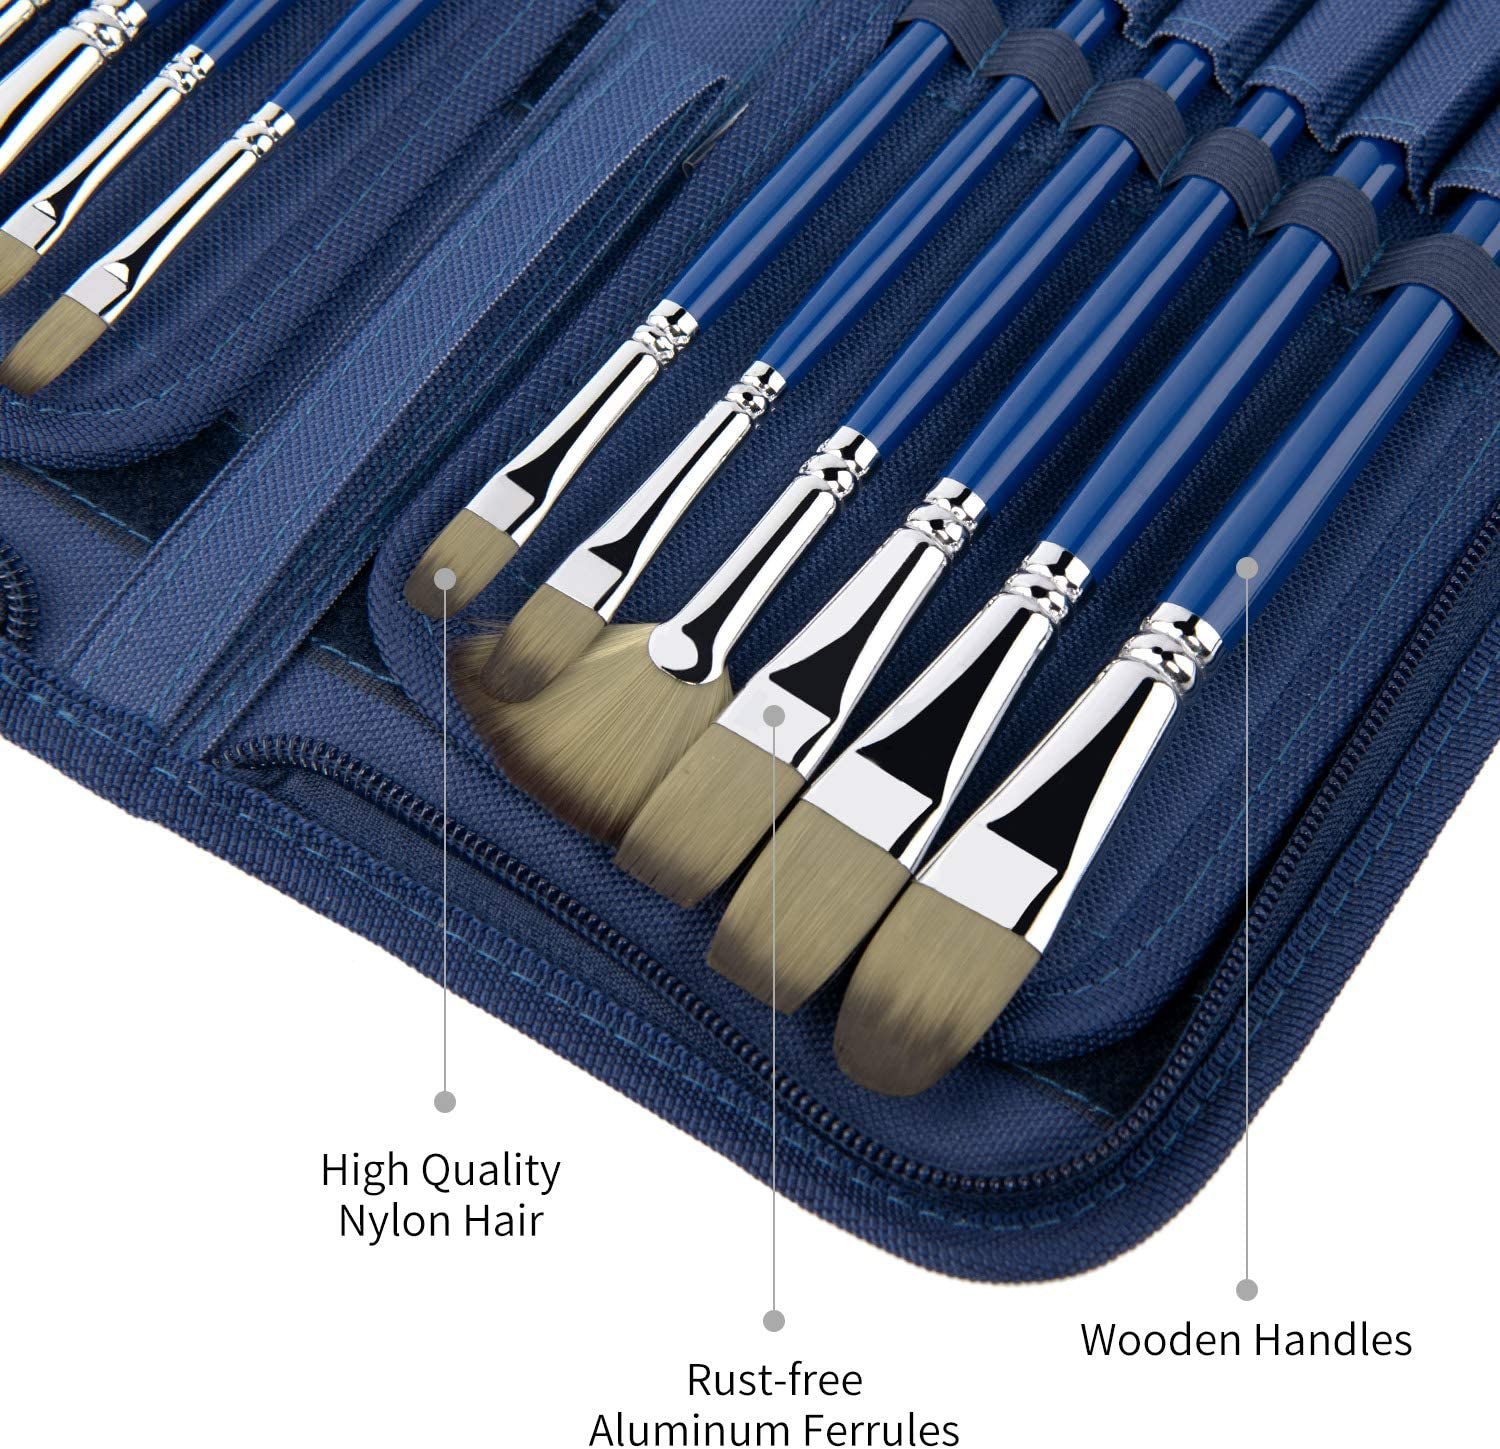 Different Sizes Multi-functionial Brushes Shape for Watercolor Oil Acrylic Gouache Painting,Nice Gift for Artists Adults /& Kids 15 PCS Artist Paint Brush Set